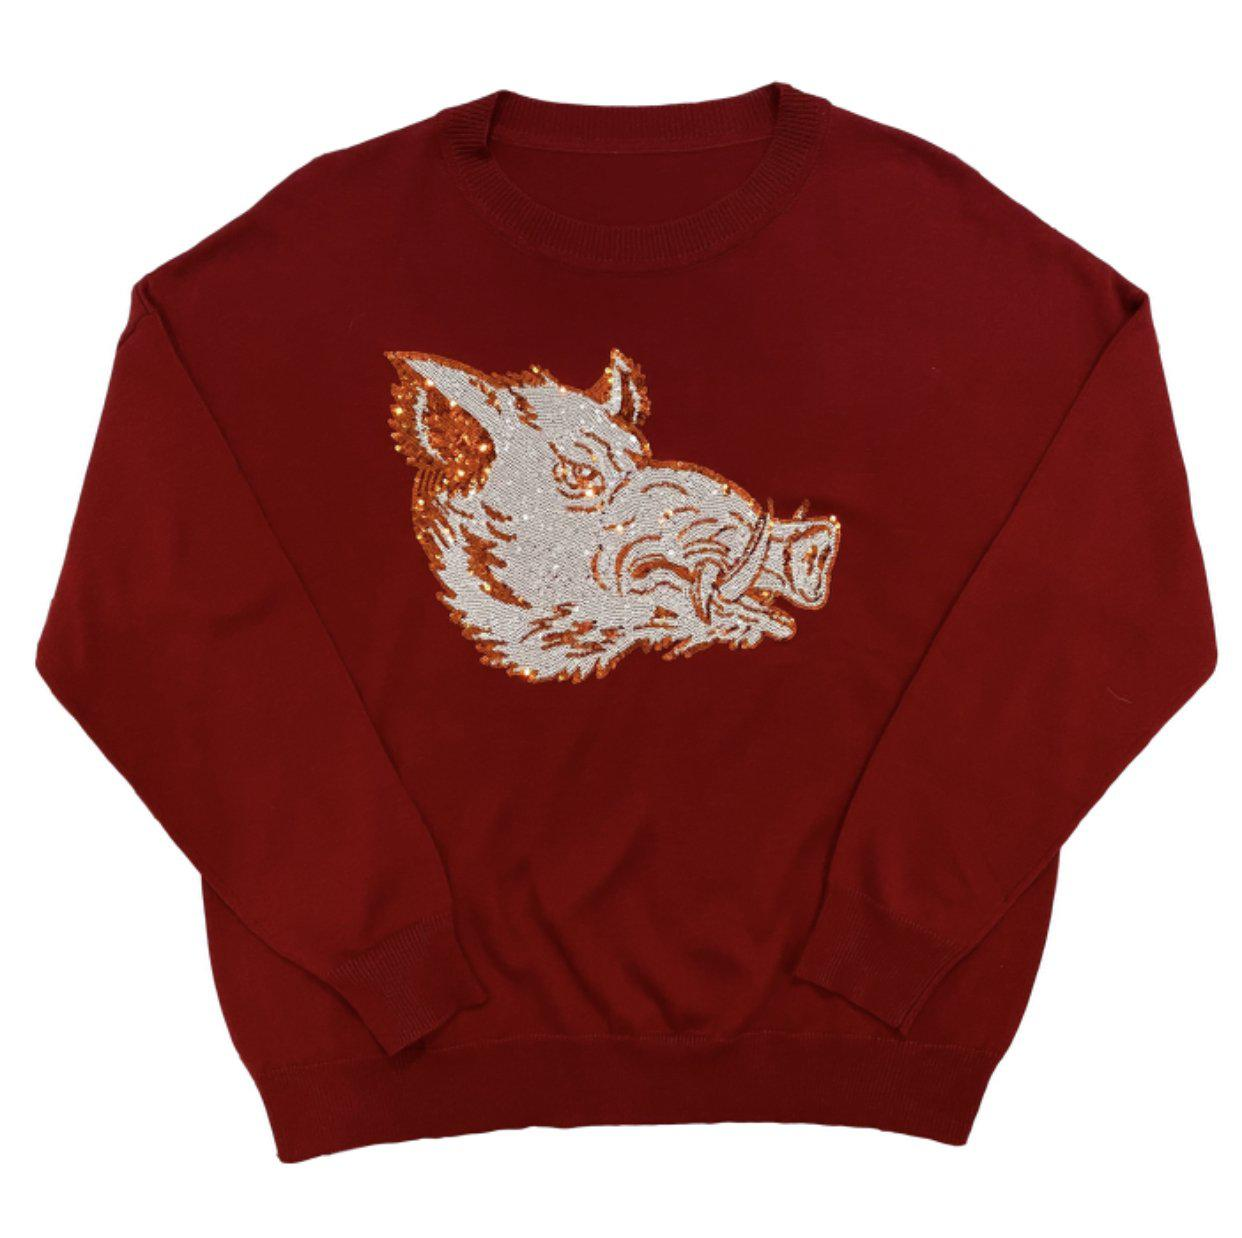 Oversized Razorback Sweater